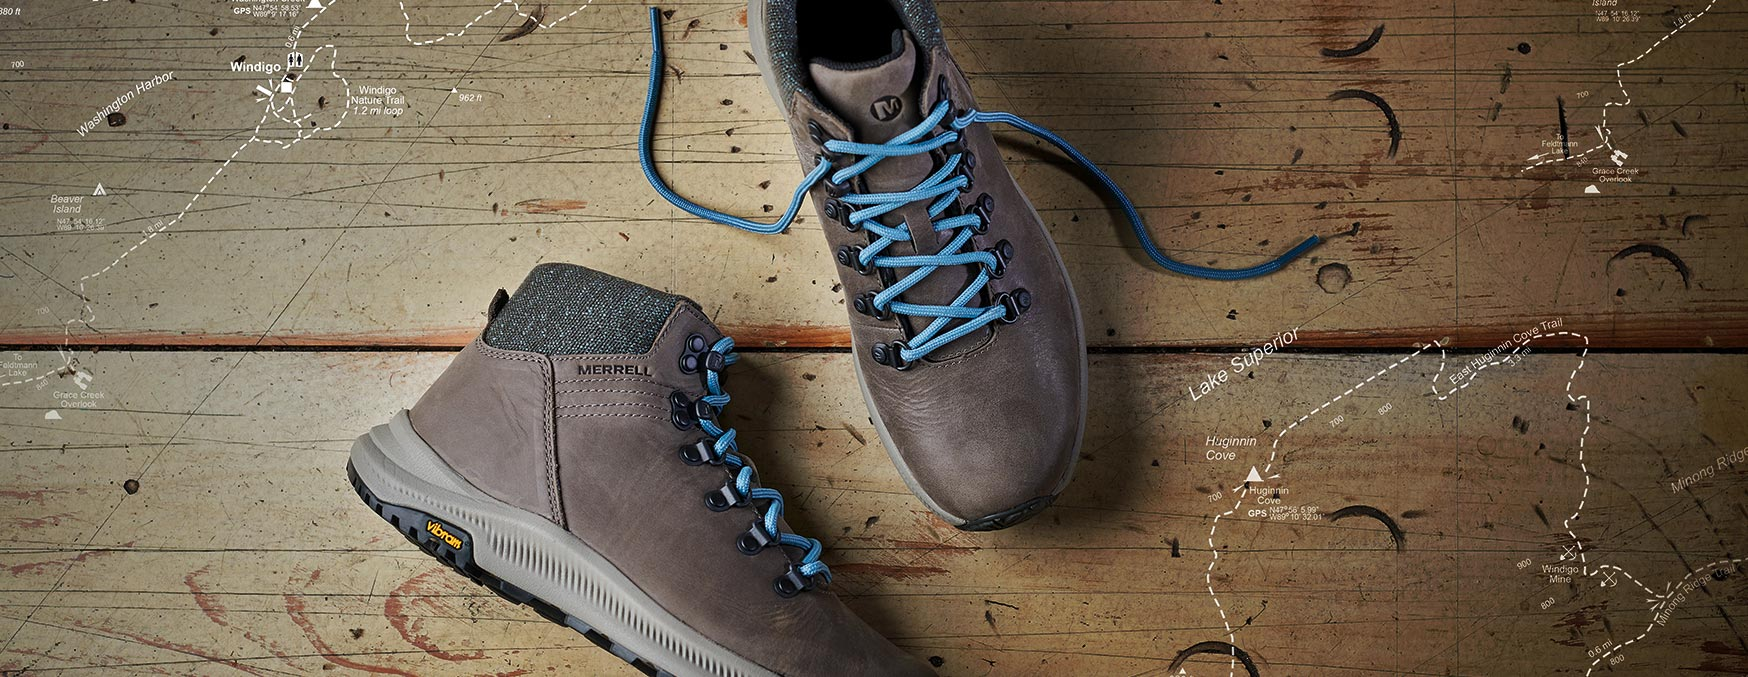 Leather Ontario shoe with blue laces